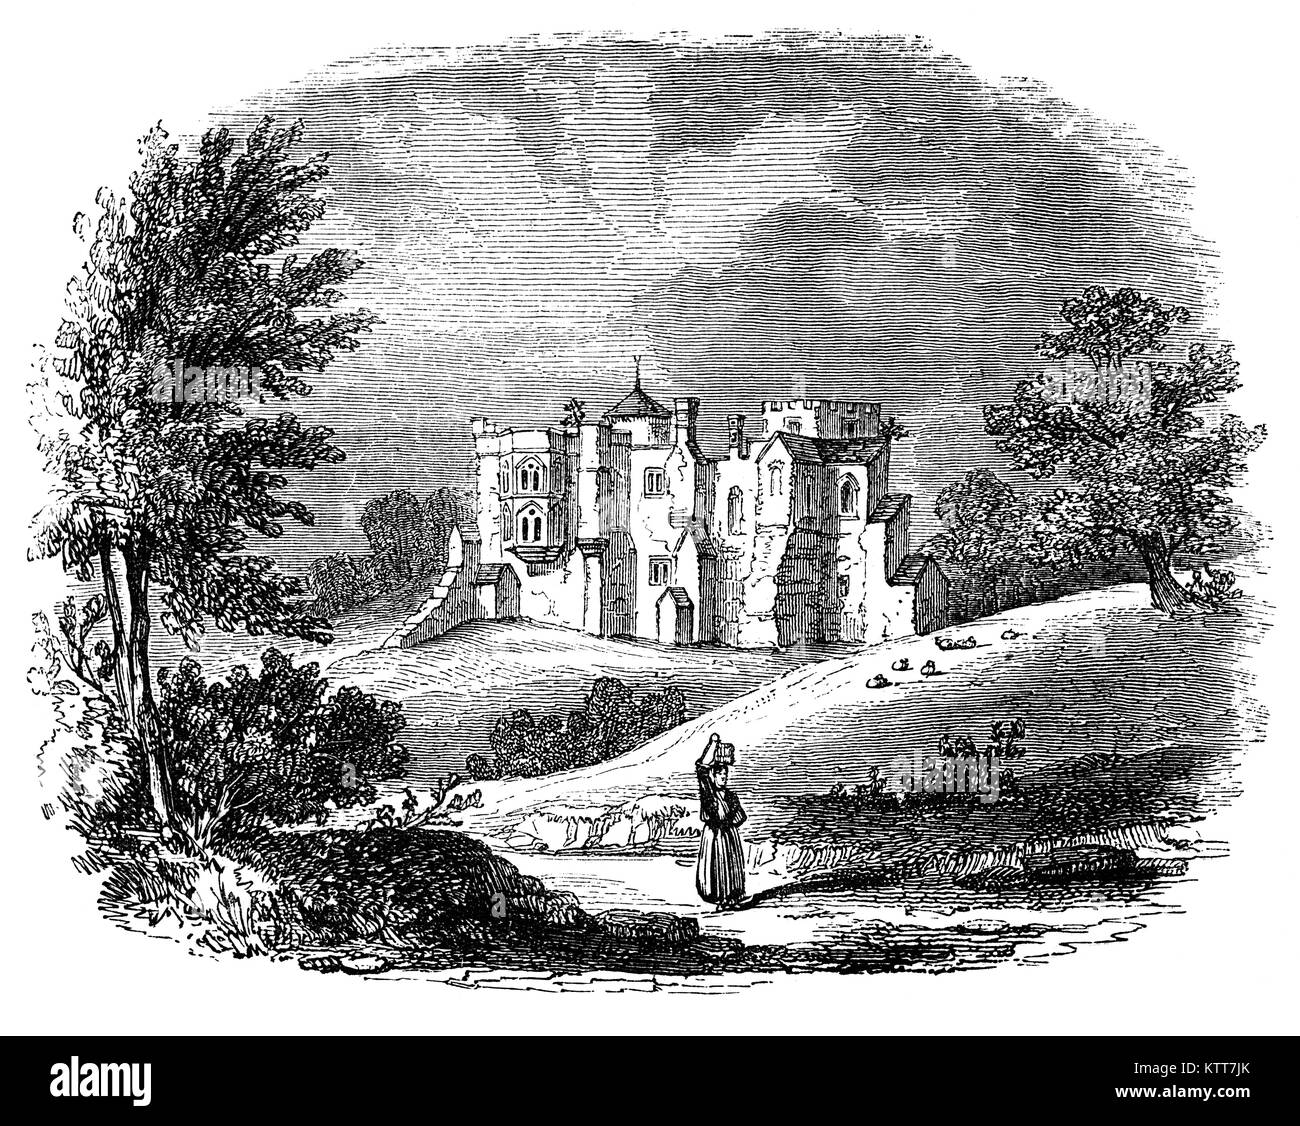 Woodstock Palace was a royal residence in the English town of Woodstock, Oxfordshire. Henry I of England built a - Stock Image